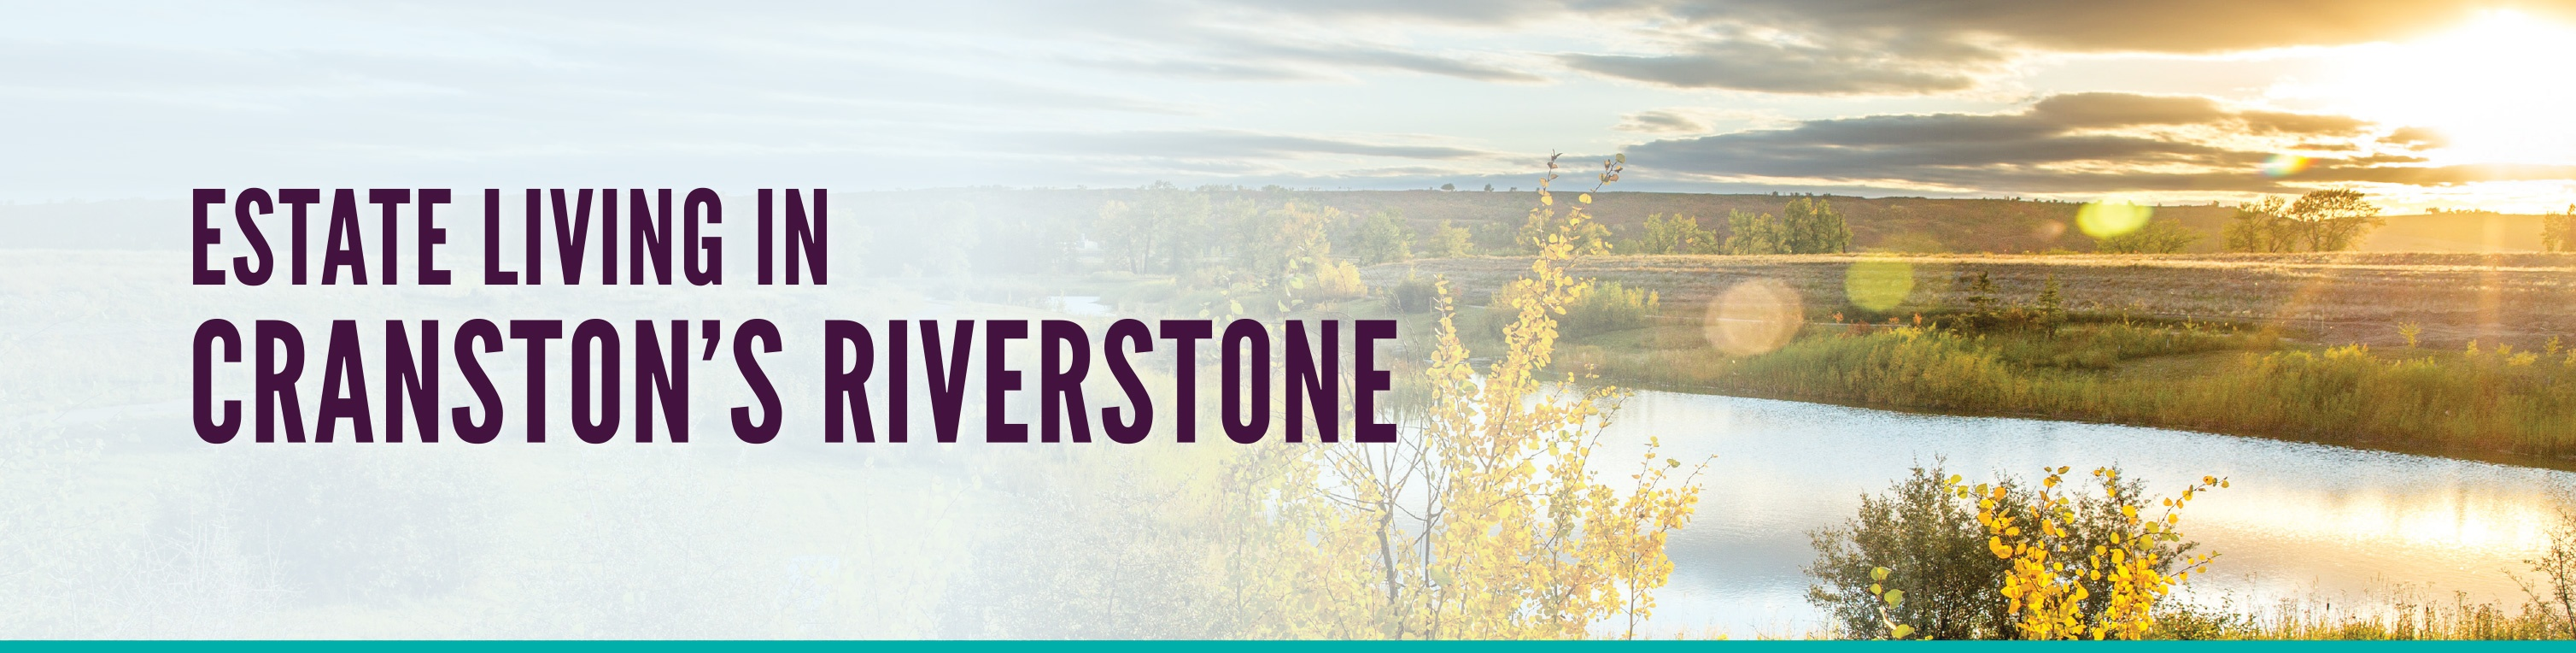 Estate Living In Cranston's Riverstone - Trico Homes